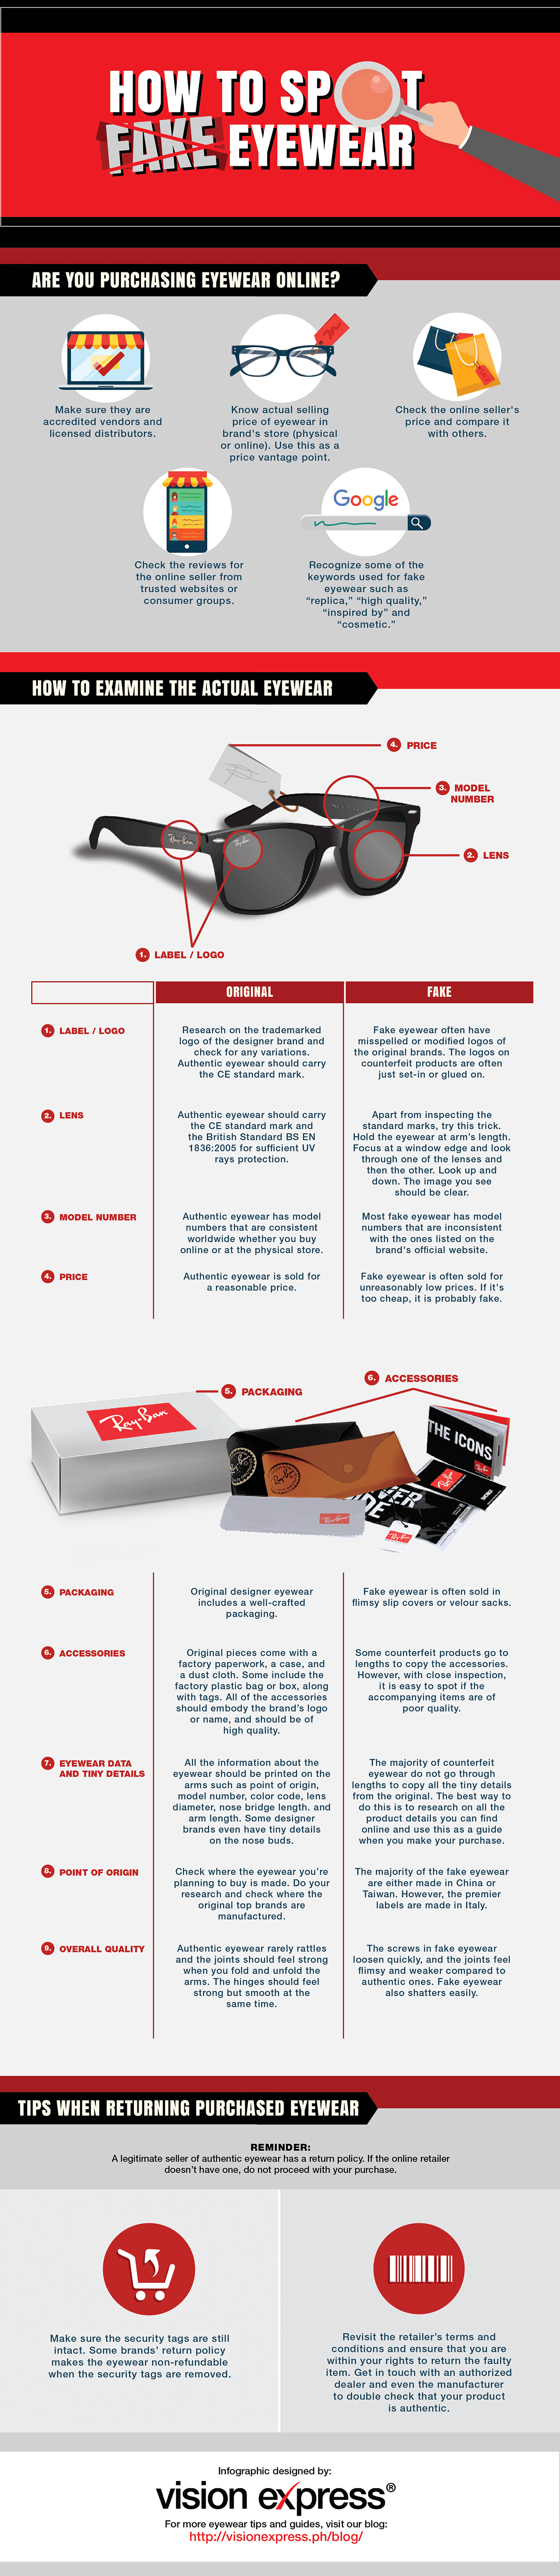 HOW-TO-SPOT-FAKE-EYEWEAR_infographic-plaza